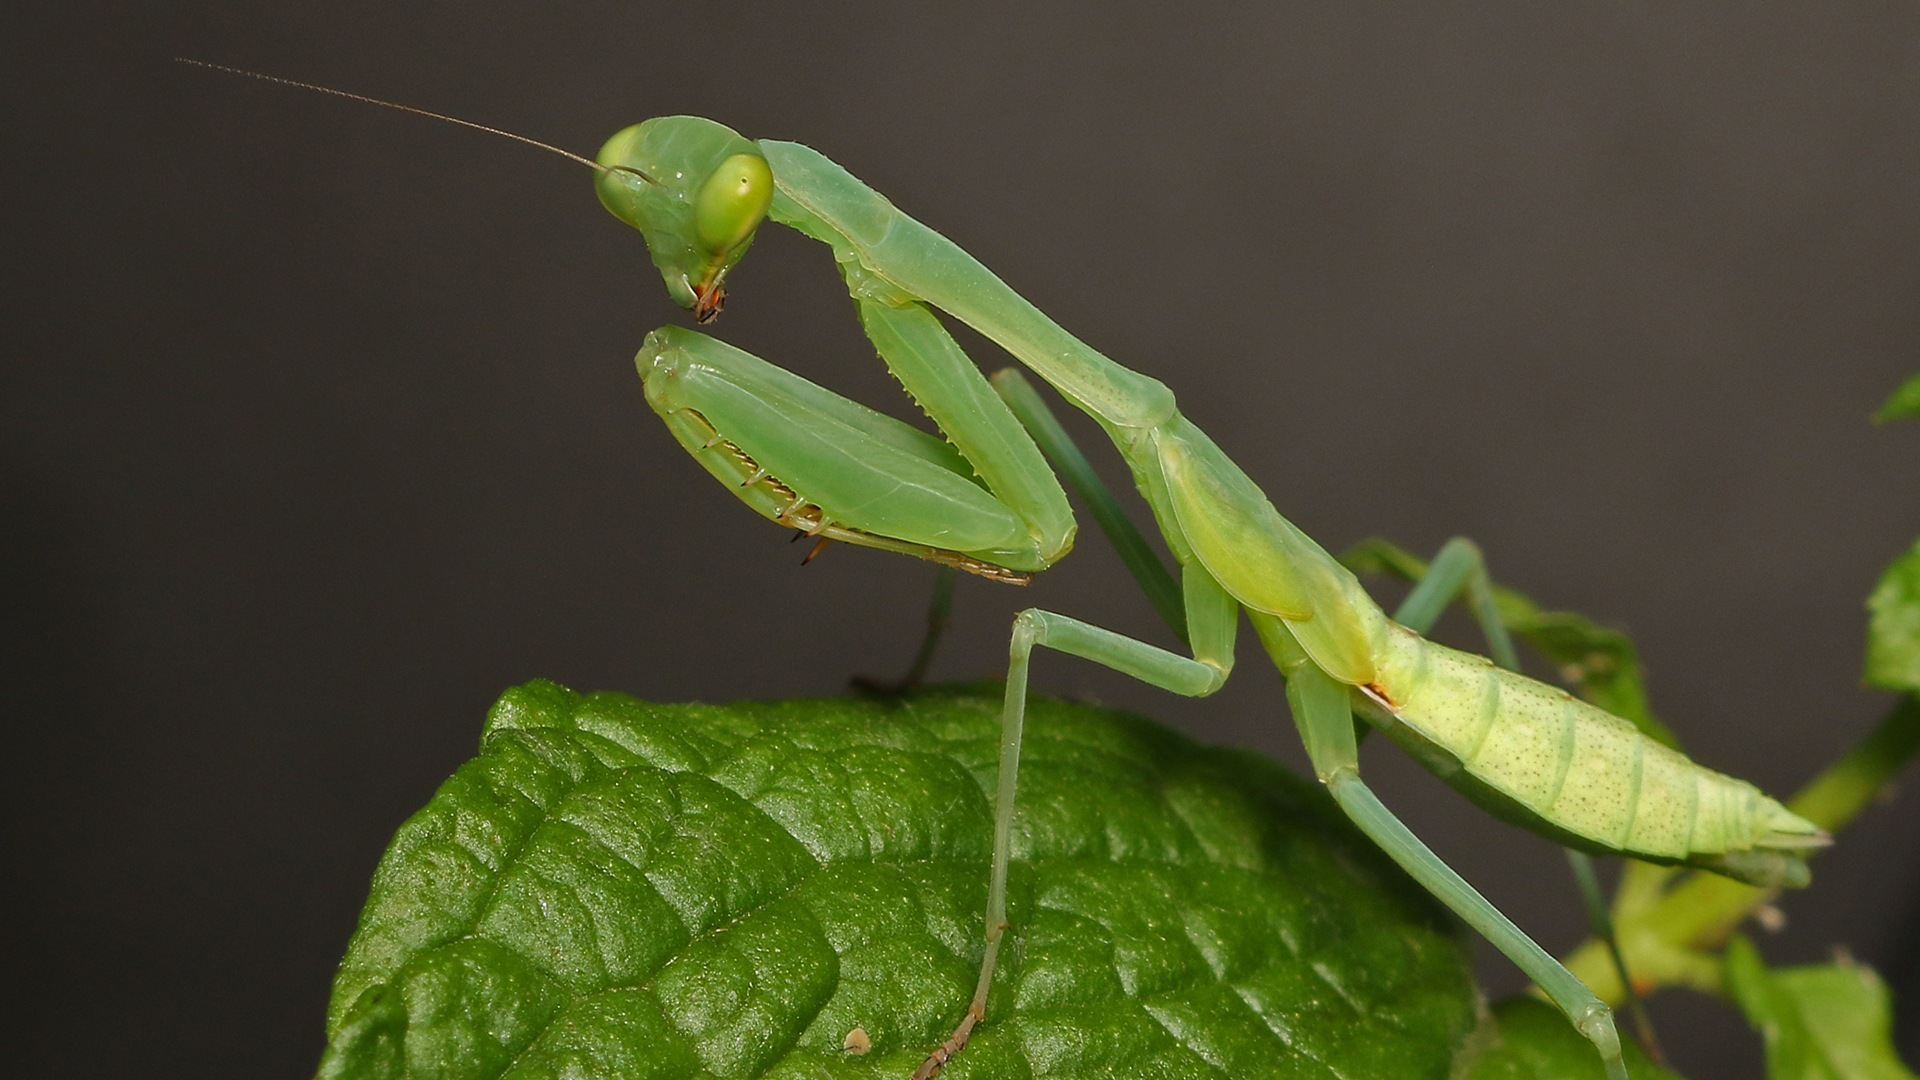 Praying Mantis by Gary_Stone